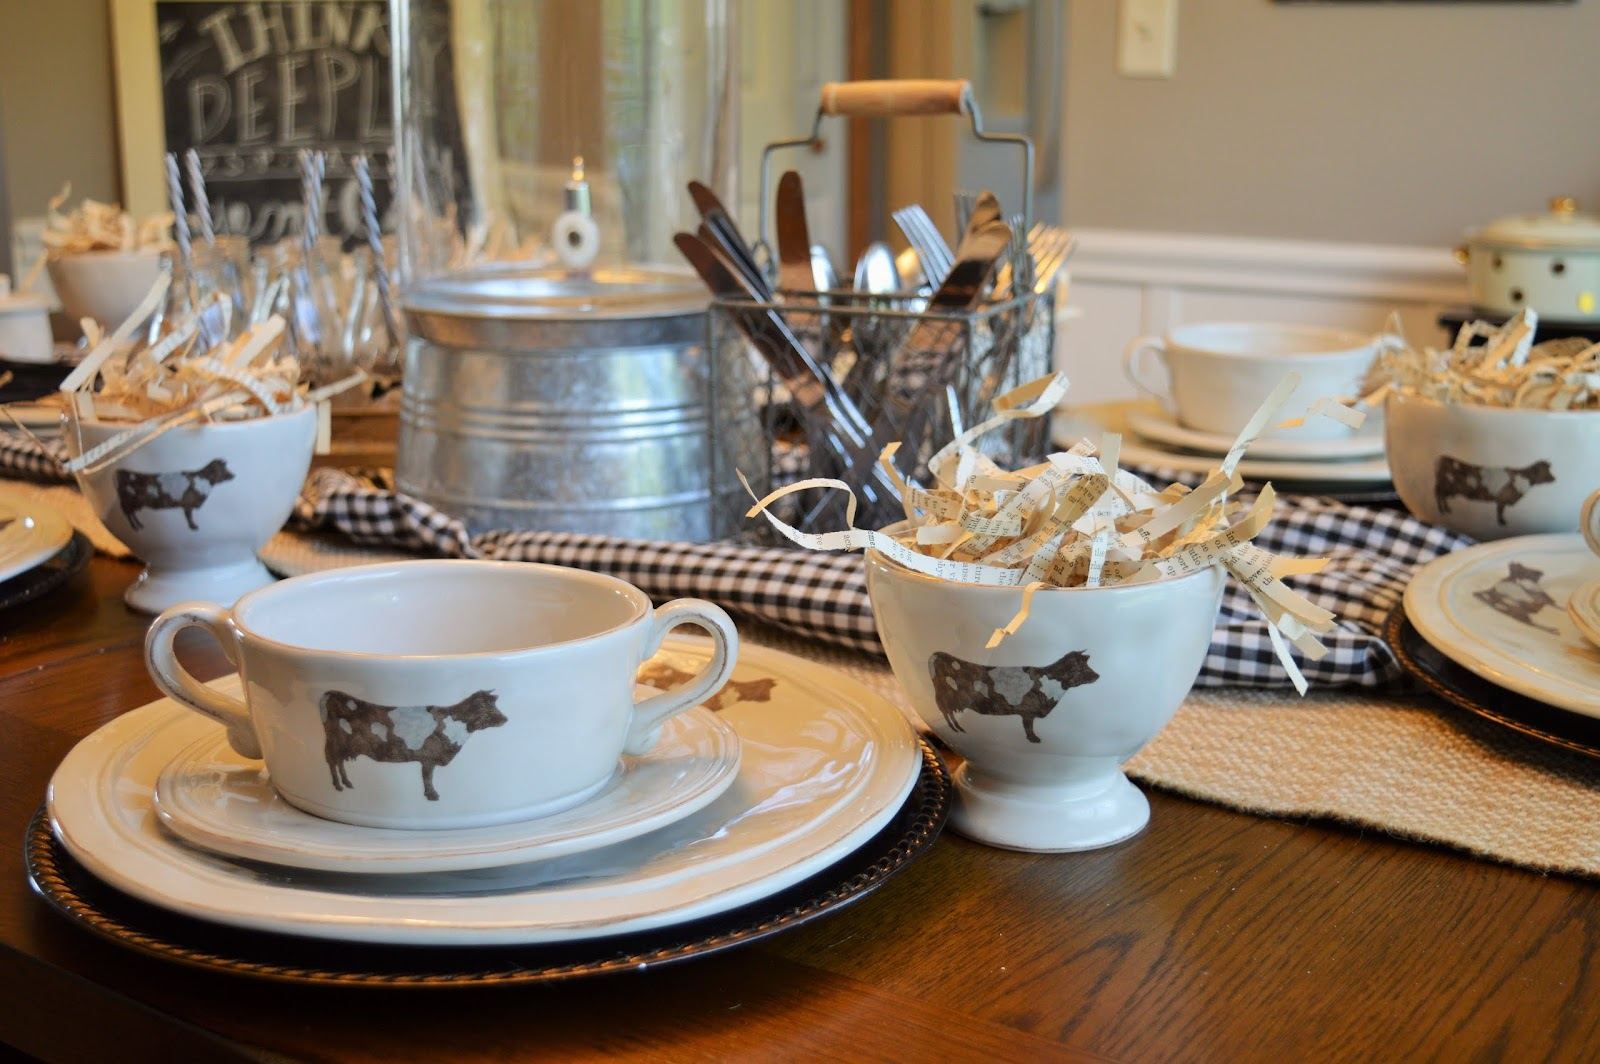 Importance Of Table Setting Blog Blog Street Ragon House Whats In A Table Setting